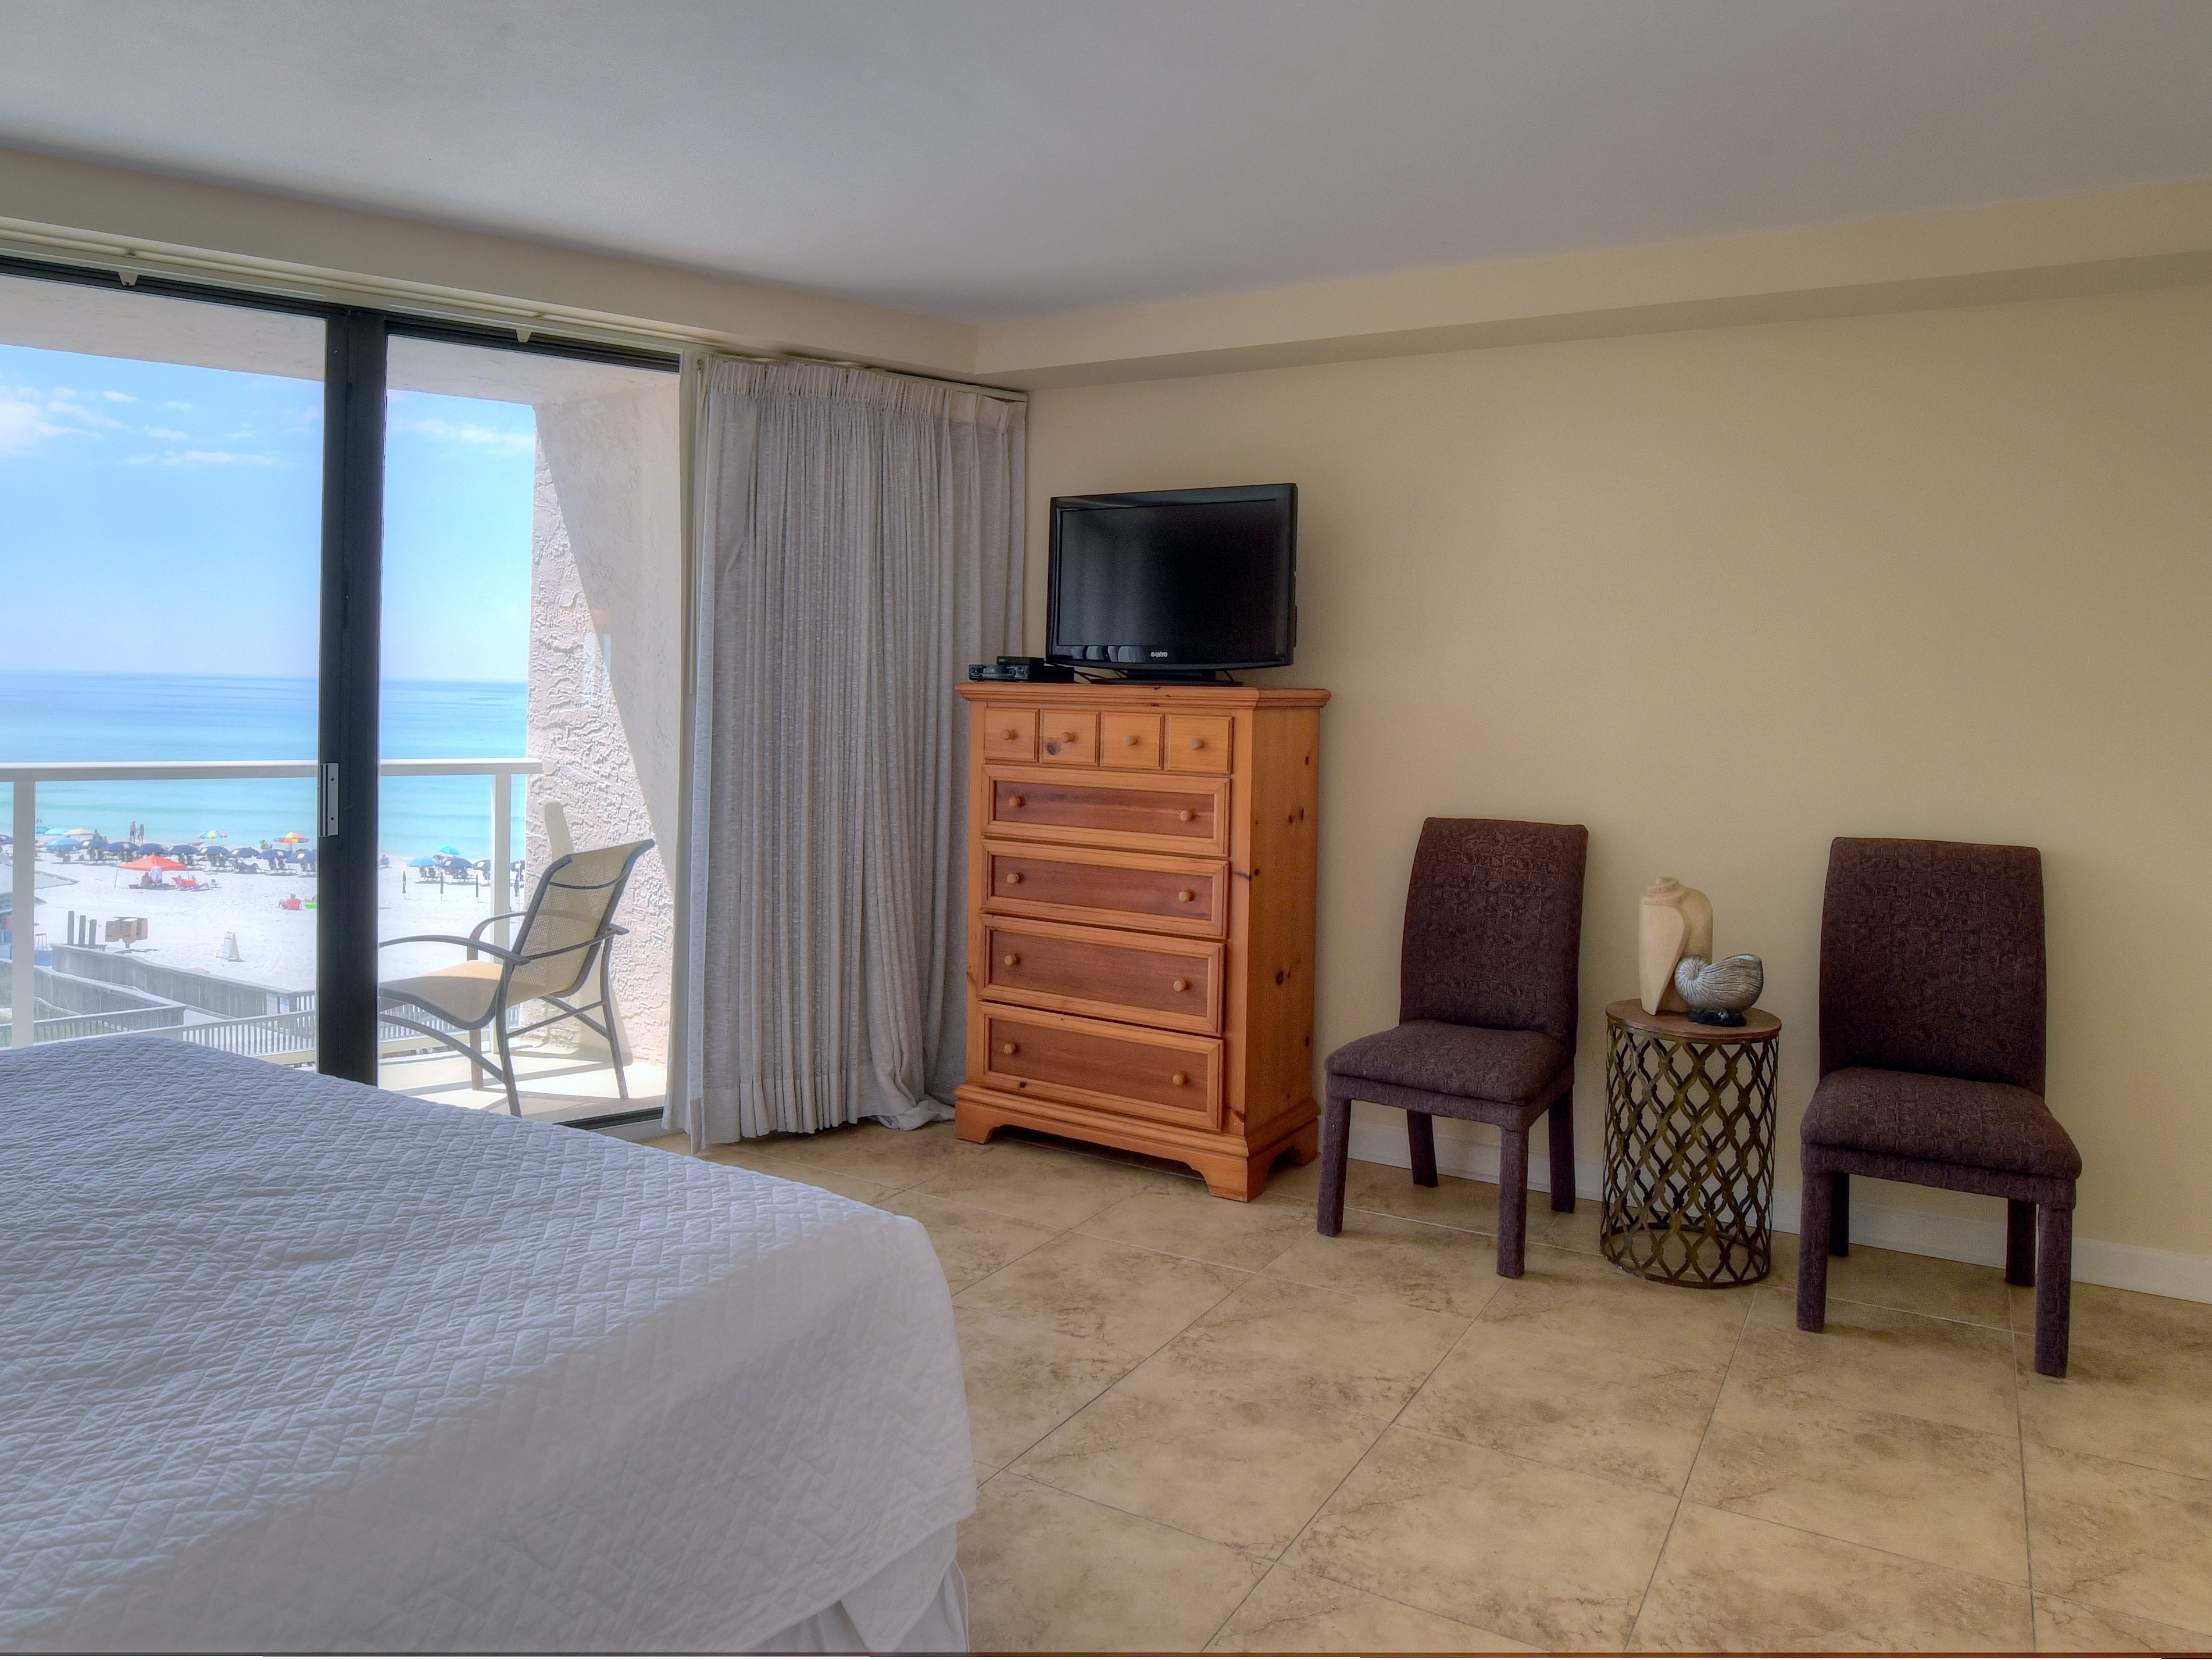 4243 Beachside Two Condo rental in Beachside Towers at Sandestin in Destin Florida - #14